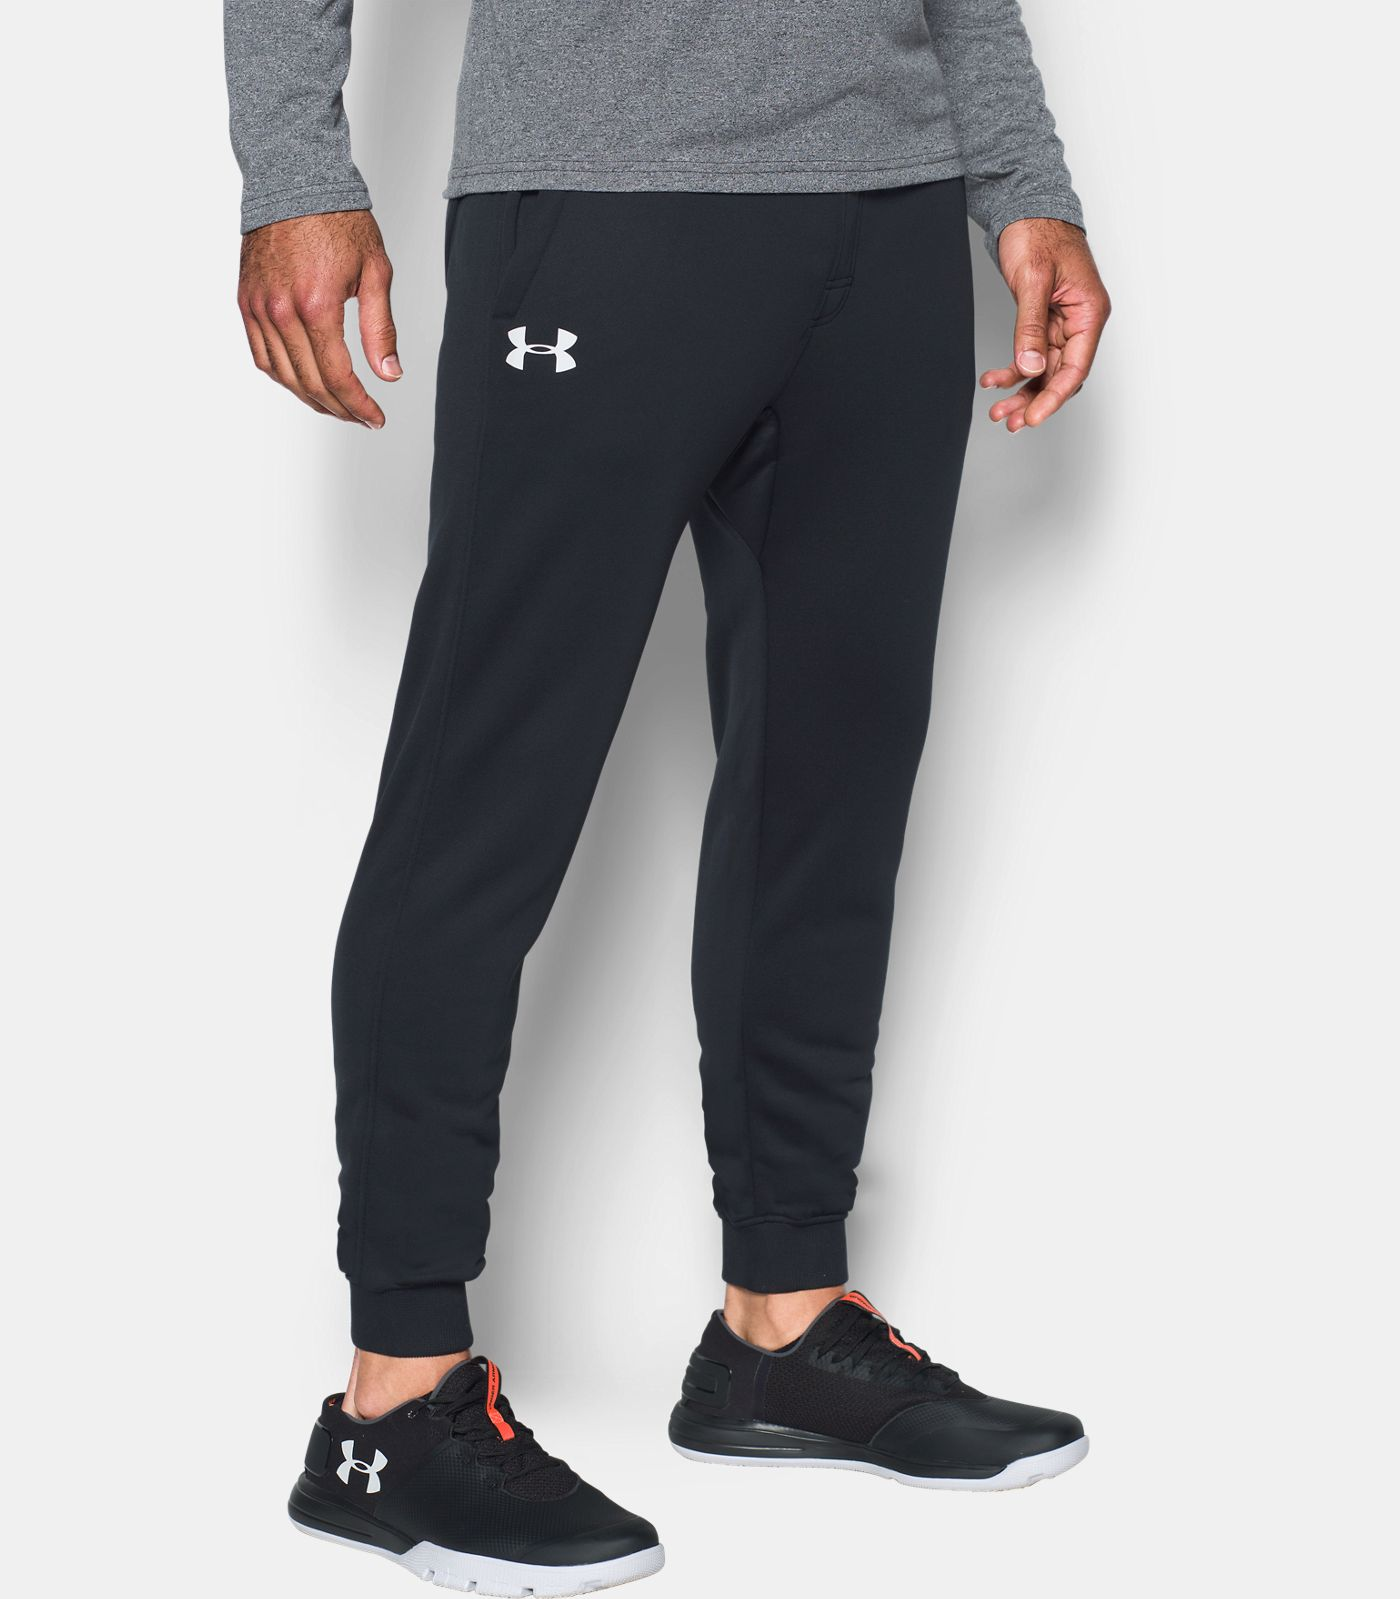 Under Armour Storm Armour Fleece Joggers Mens Pants